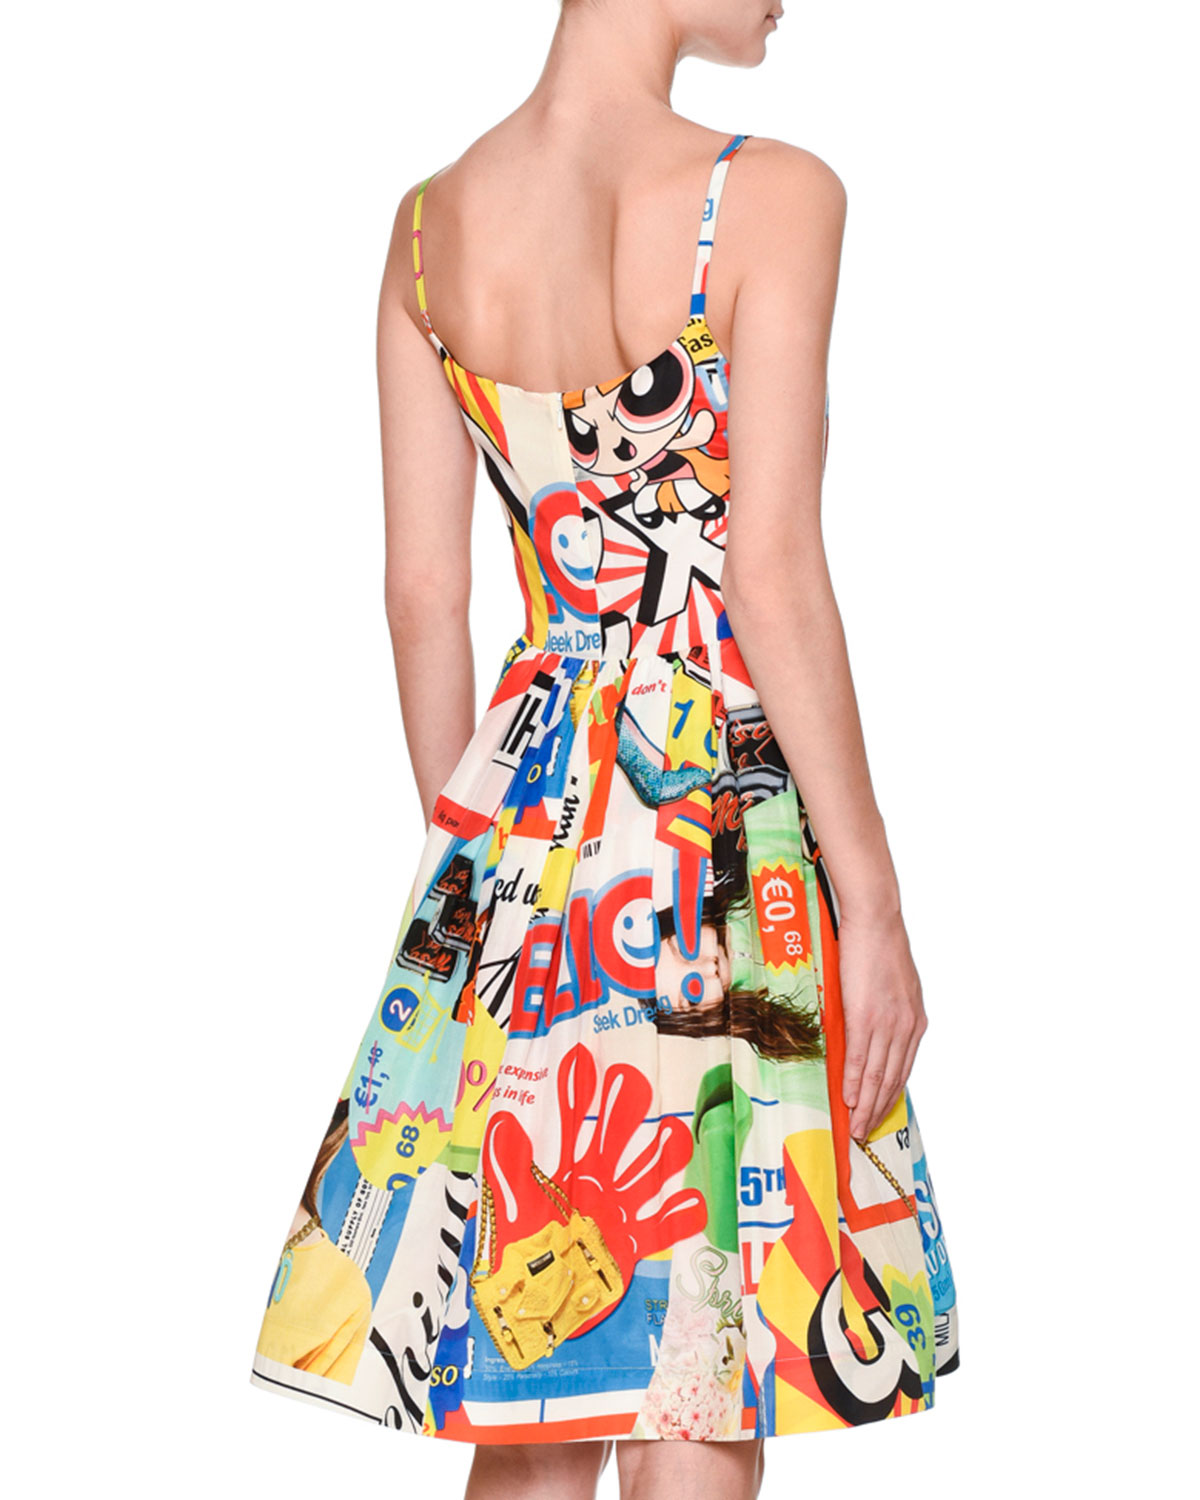 702f965a16 Moschino Powerpuff Girls Tank Dress W/Pockets, White/Multi | Neiman Marcus